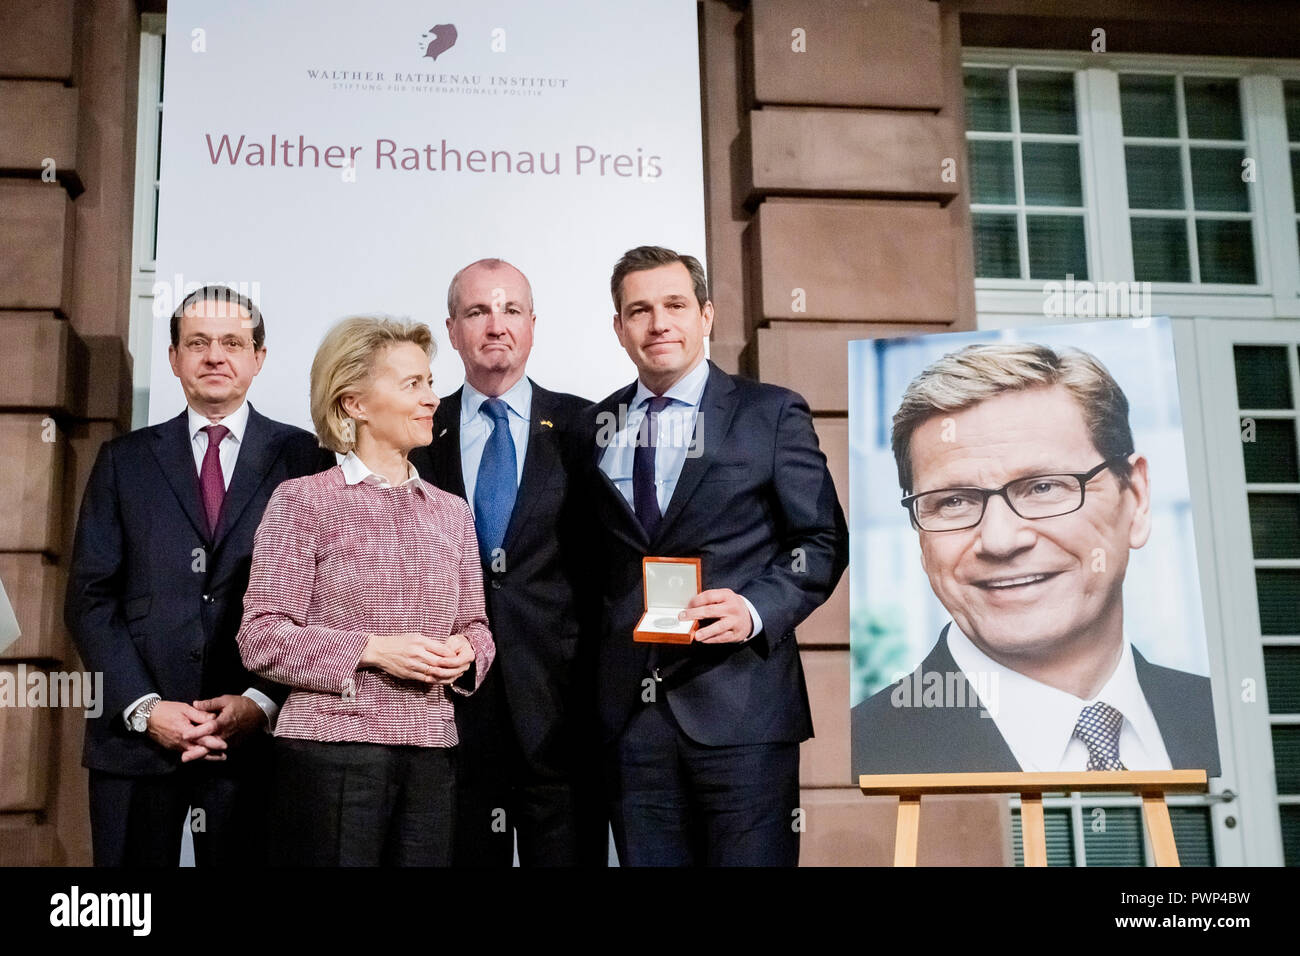 17 October 2018, Berlin: 17 October 2018, Germany, Berlin: Hartmuth Jung (L-R), Chairman of the Walther Rathenau Institute, Ursula von der Leyen (CDU), Federal Minister of Defense, Philip Murphy, Governor of the US State of New Jersey, and Michael Mronz, life partner of the late Guido Westerwelle, will be together at the posthumous presentation of the Rathenau Prize 2018 to Guido Westerwelle. Westerwelle is posthumously honoured by the Walther Rathenau Institute, Foundation for International Politics, 'for his work in the sense of a peaceful world order based on international understanding'. P - Stock Image